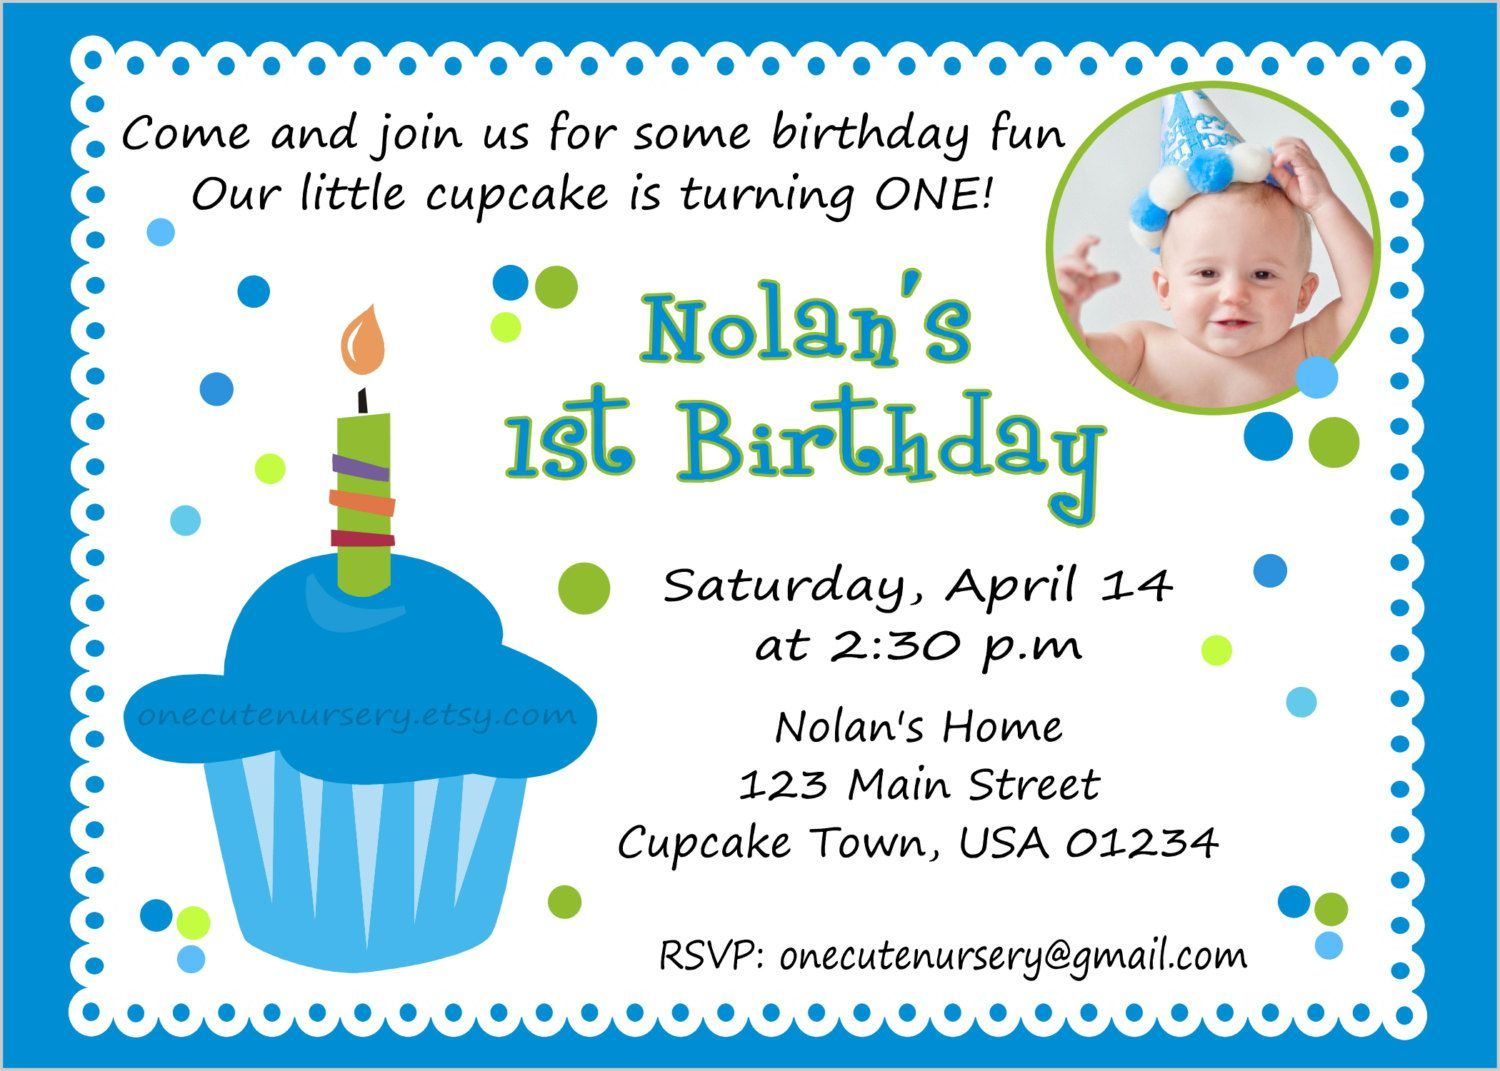 7th Birthday Invitation Wording Boy Birthday Invitation Card Template Birthday Invitation Message 1st Birthday Invitations Boy